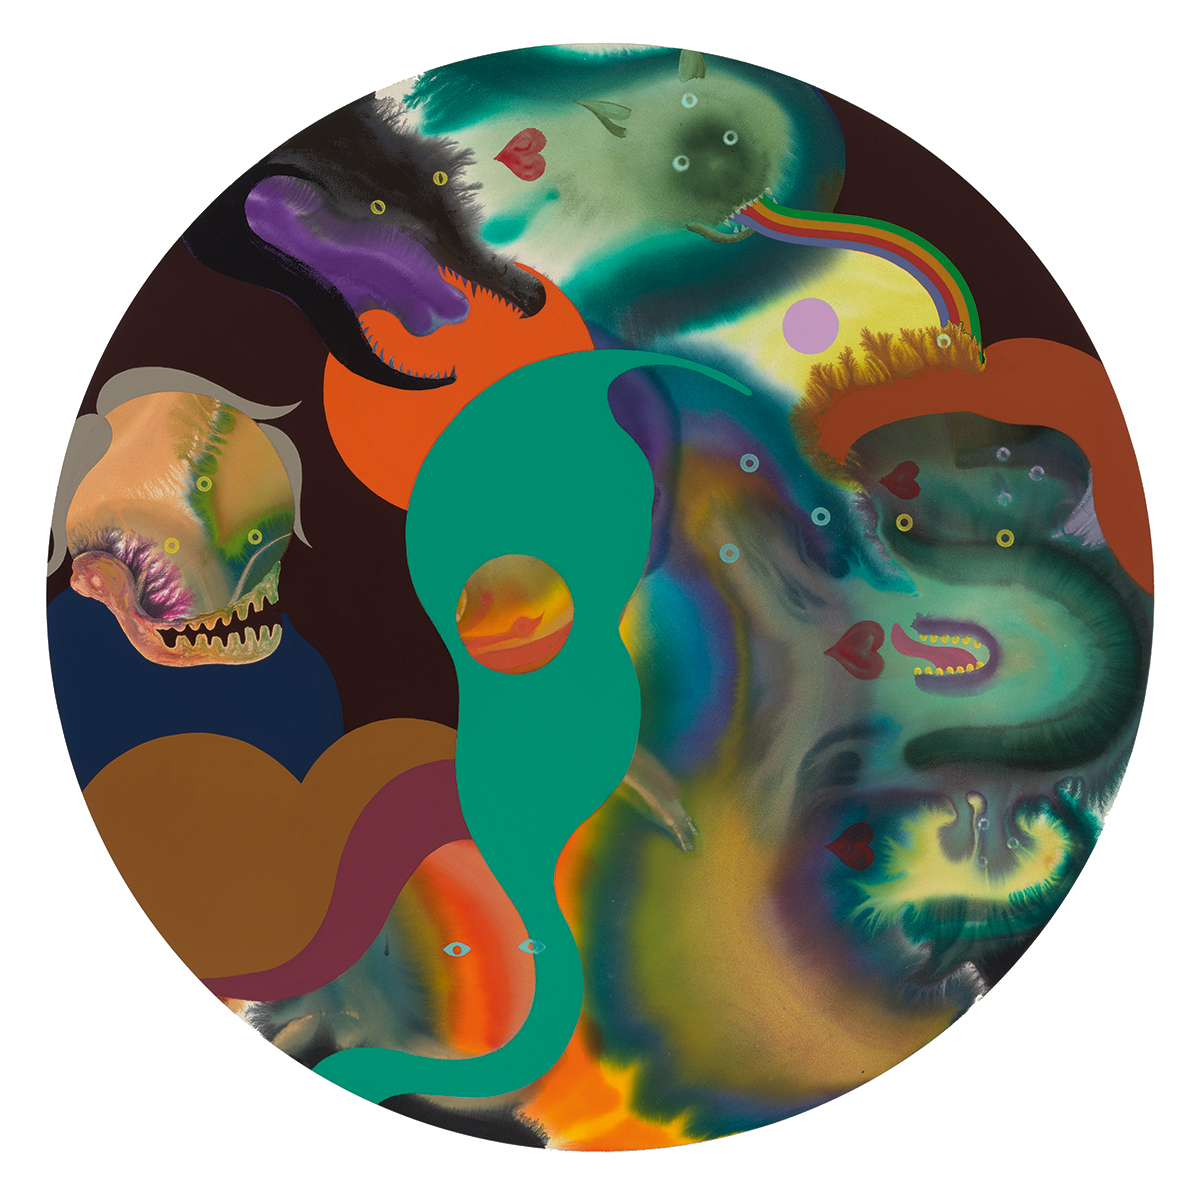 A painting of a bunch of colourful swirls, some with eyes that make it look like they are monsters.